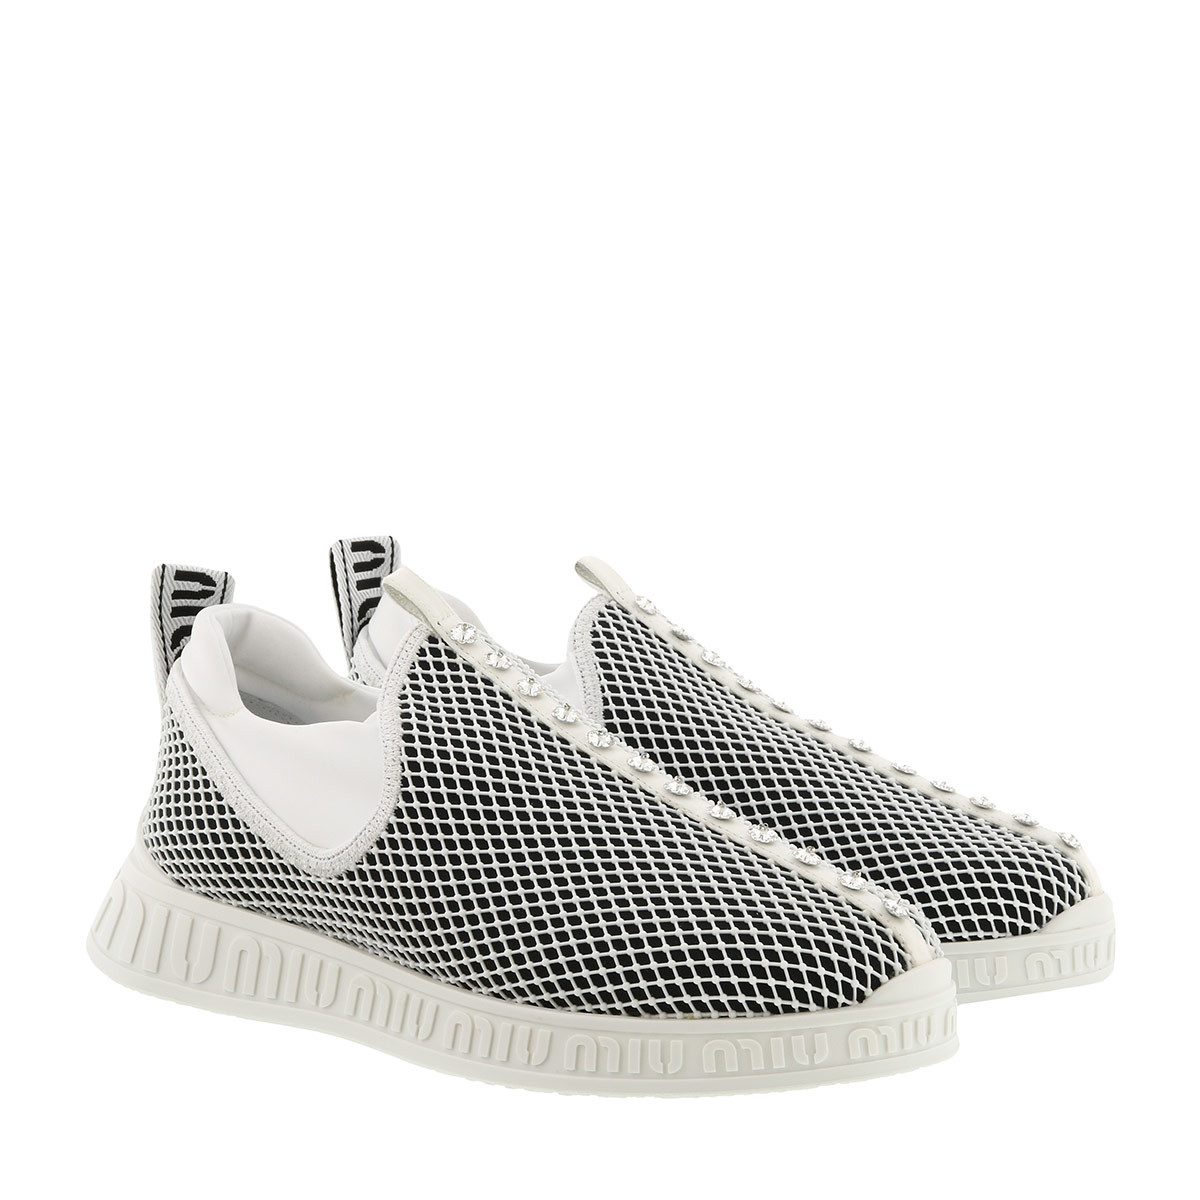 Miu Miu Sneakers - Low Top Sneaker Knit Black/White - in weiß - für Damen